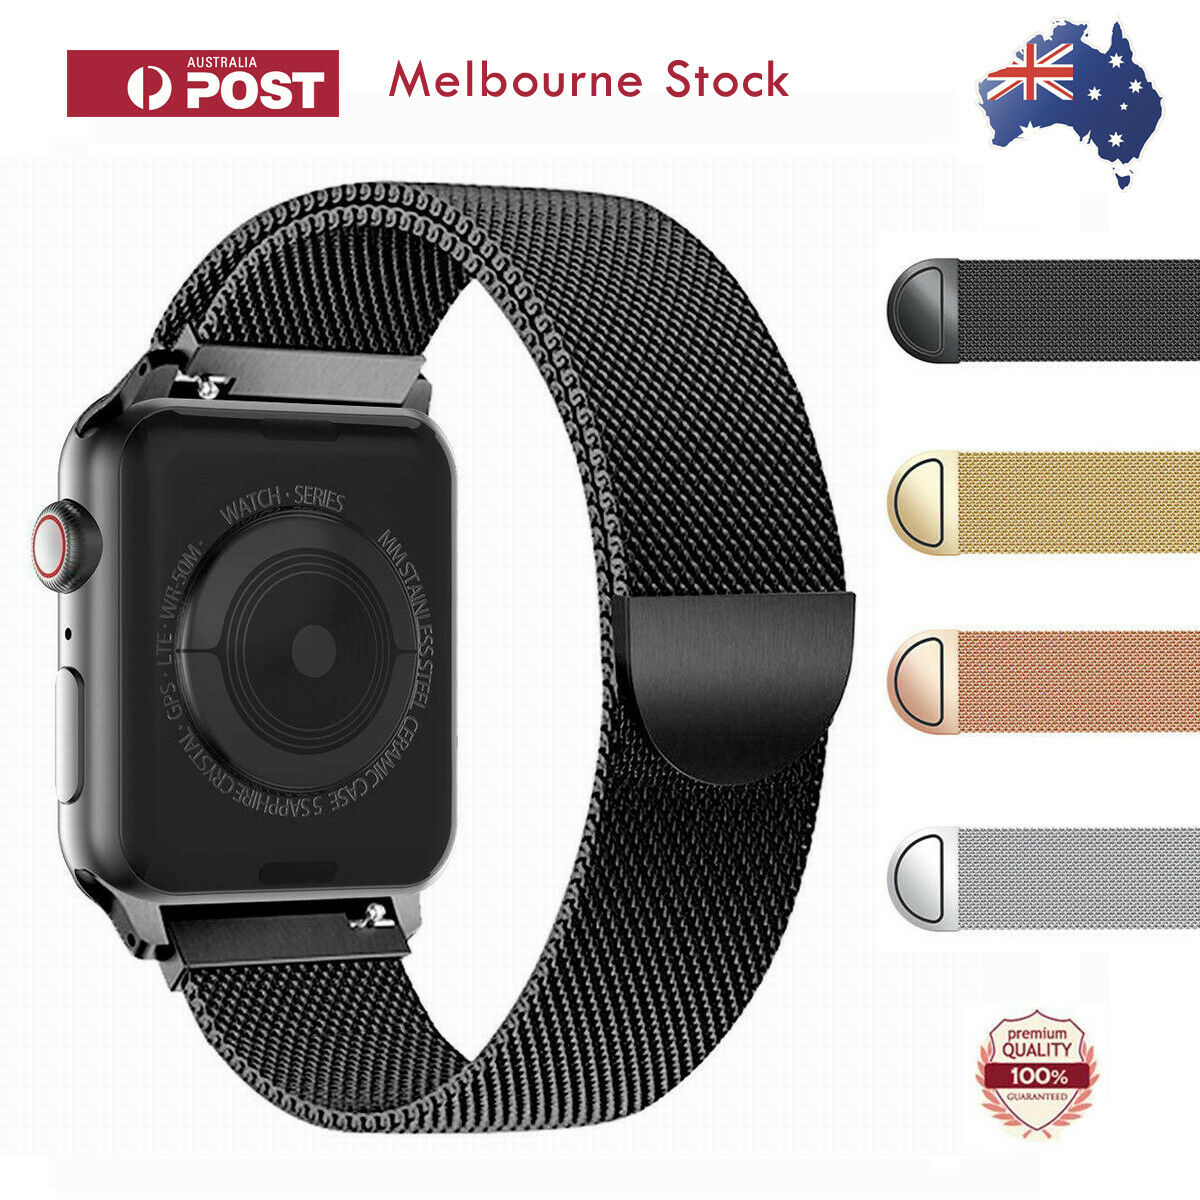 Jewellery - For Apple Watch Series 6 5 4 3 2 1 SE Stainless Steel Milanese Strap Band 40 44